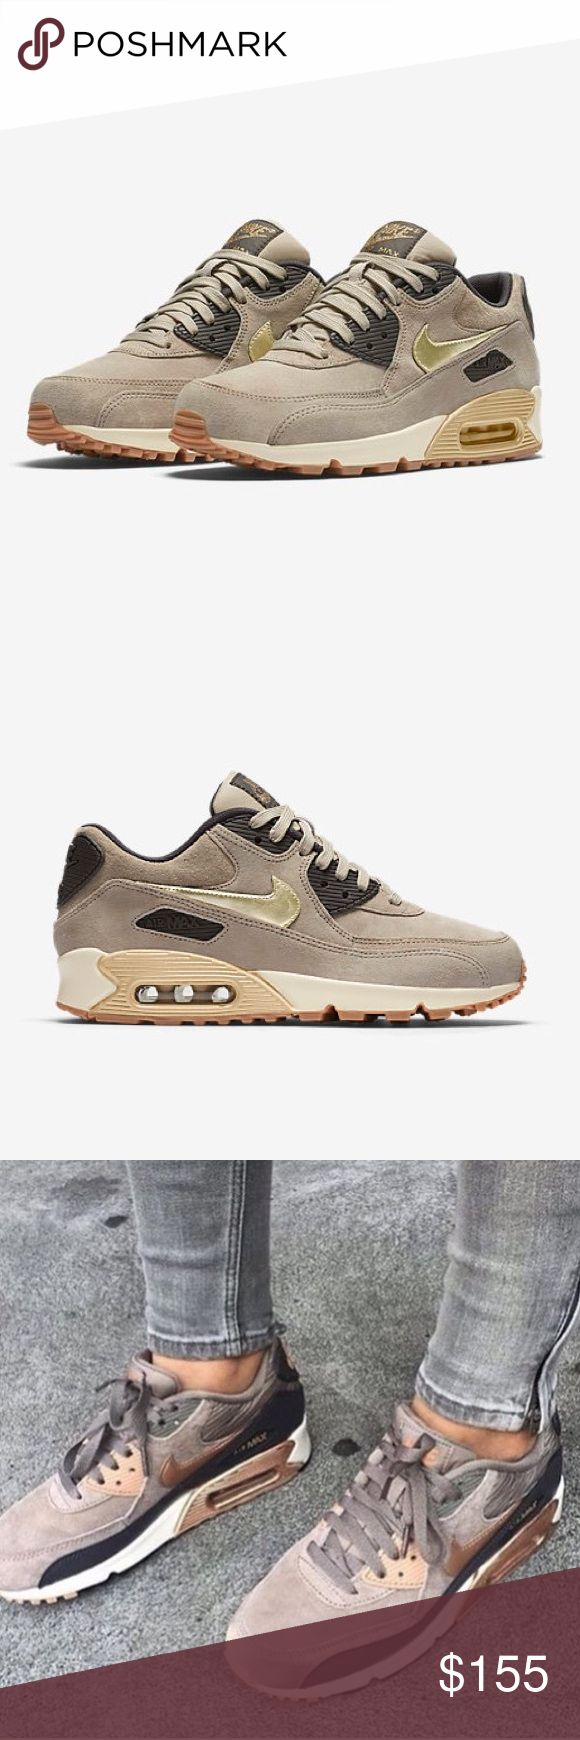 NIB Nike Air Max 90 Premium Suede Brand new in box, Nike air max 90 premium in rose gold / taupe. So beautiful but too wide/big on my feet. I am in between an 8.5-9. Only tried on. No trades. Sold out online! Nike Shoes Sneakers